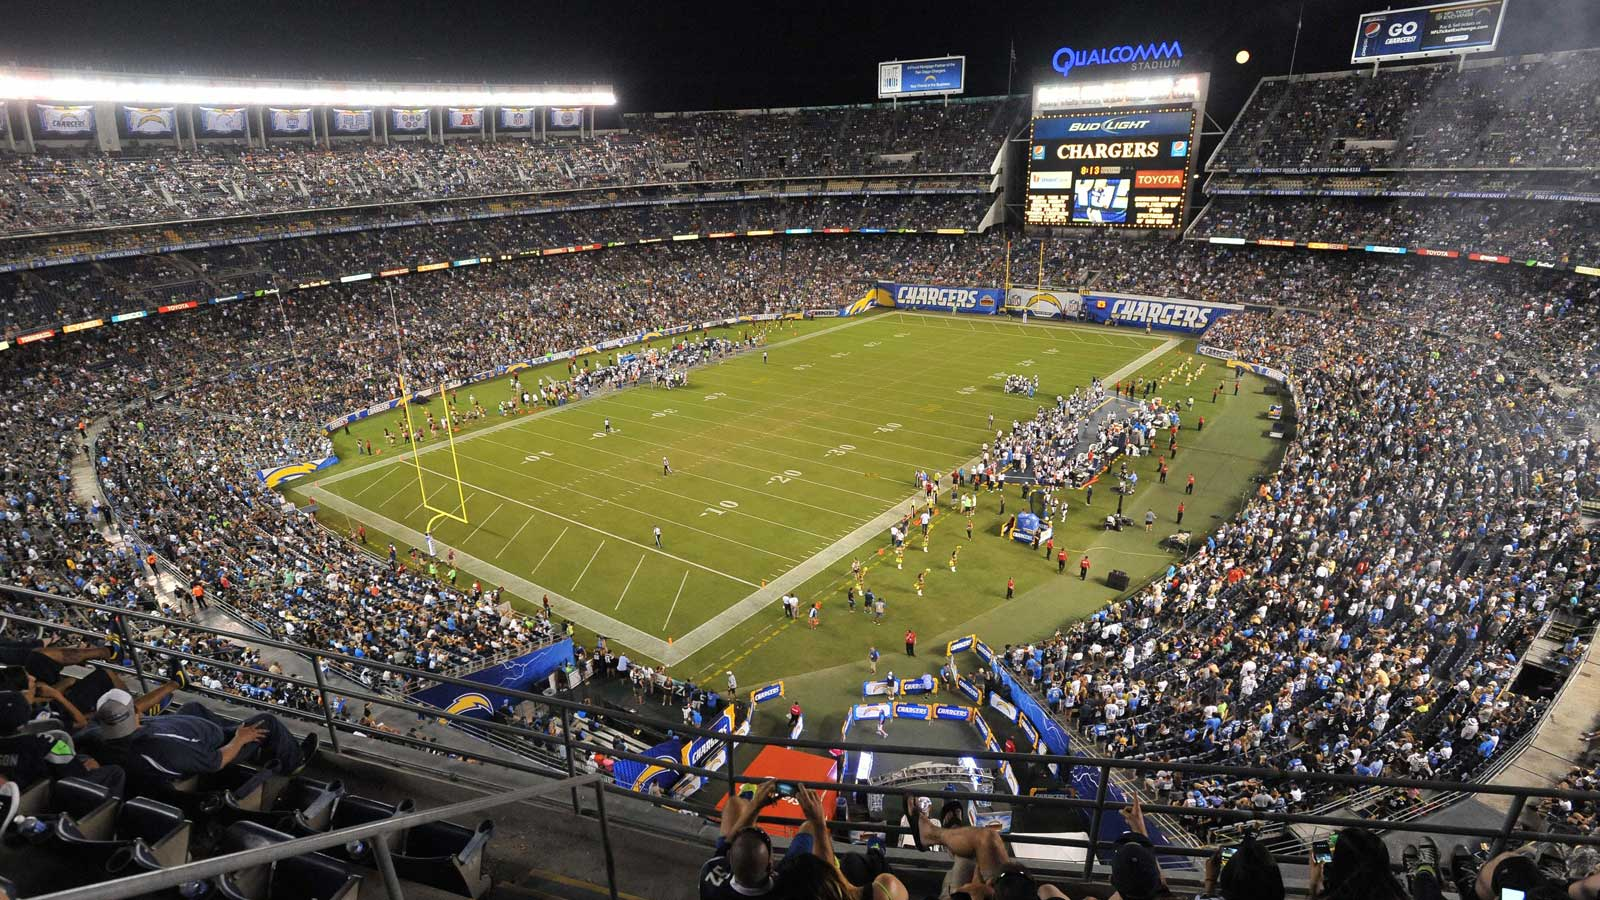 Stadium toxicity makes way for football as Chargers host Lions